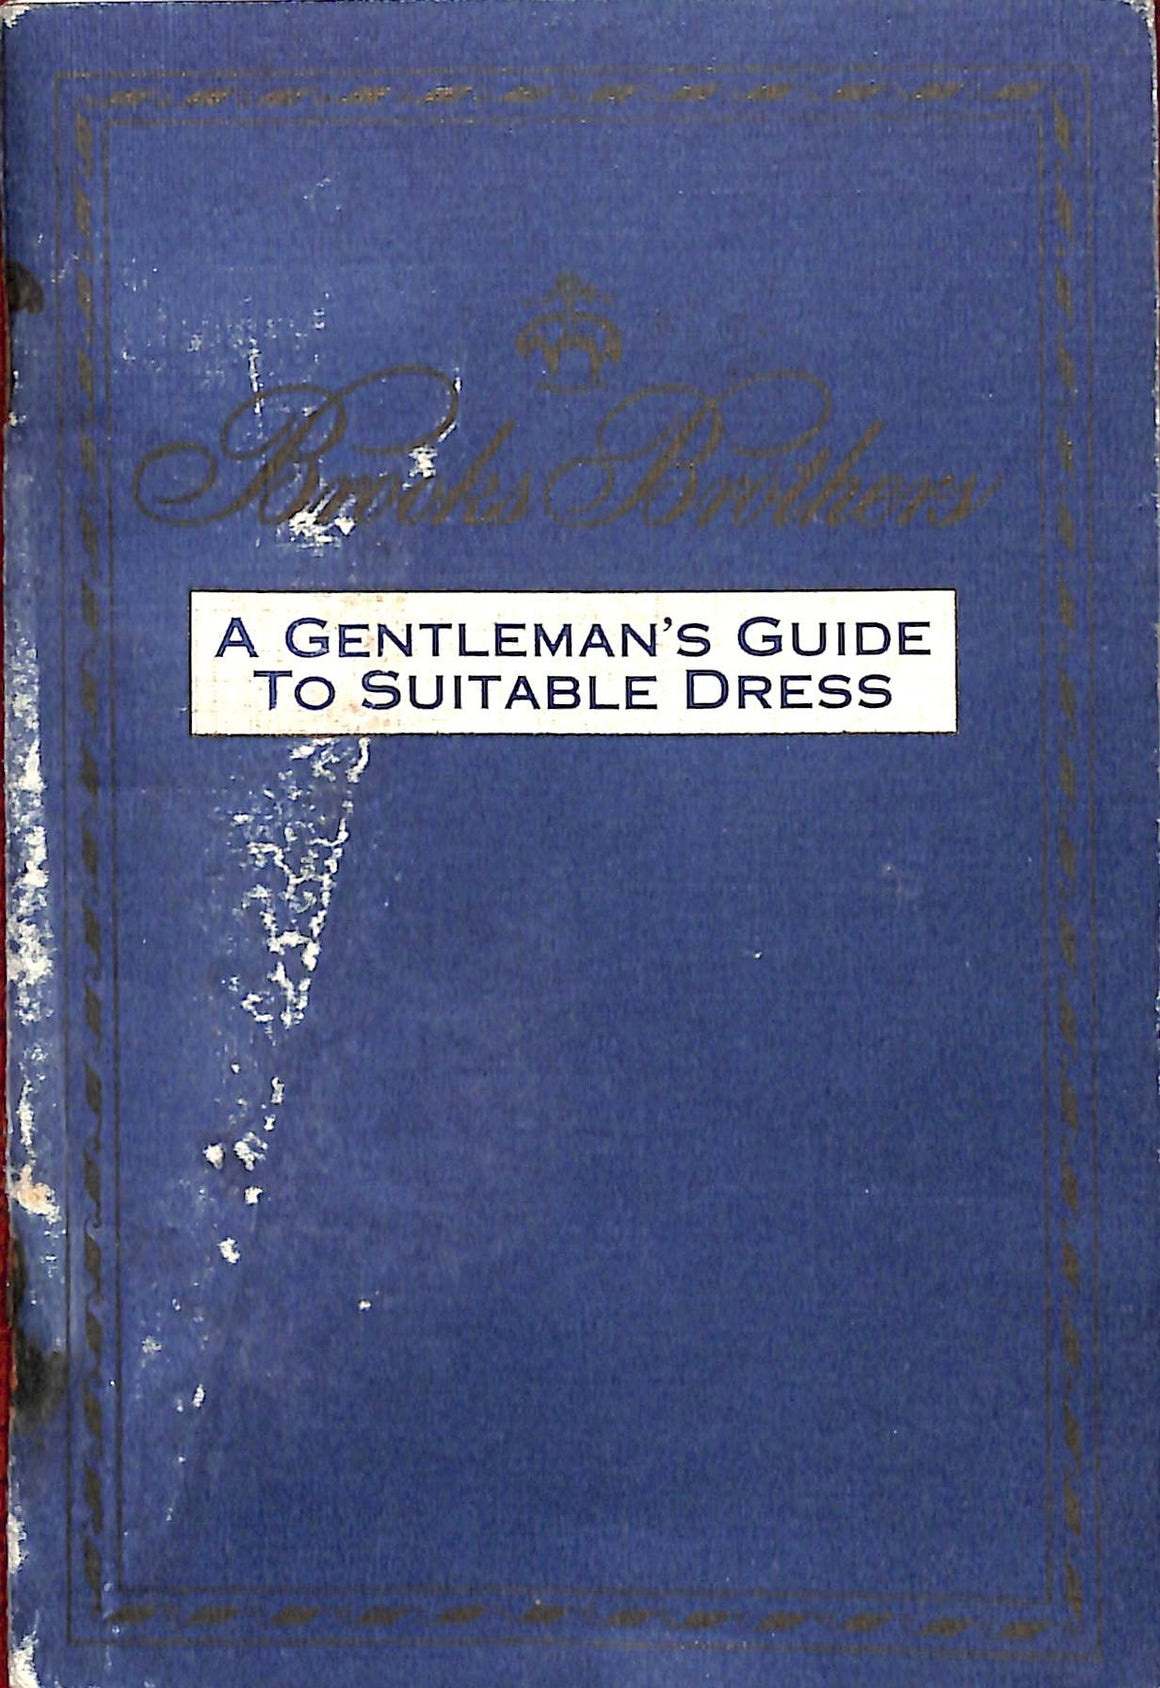 """Brooks Brothers: a Gentleman's Guide to Suitable Dress"""